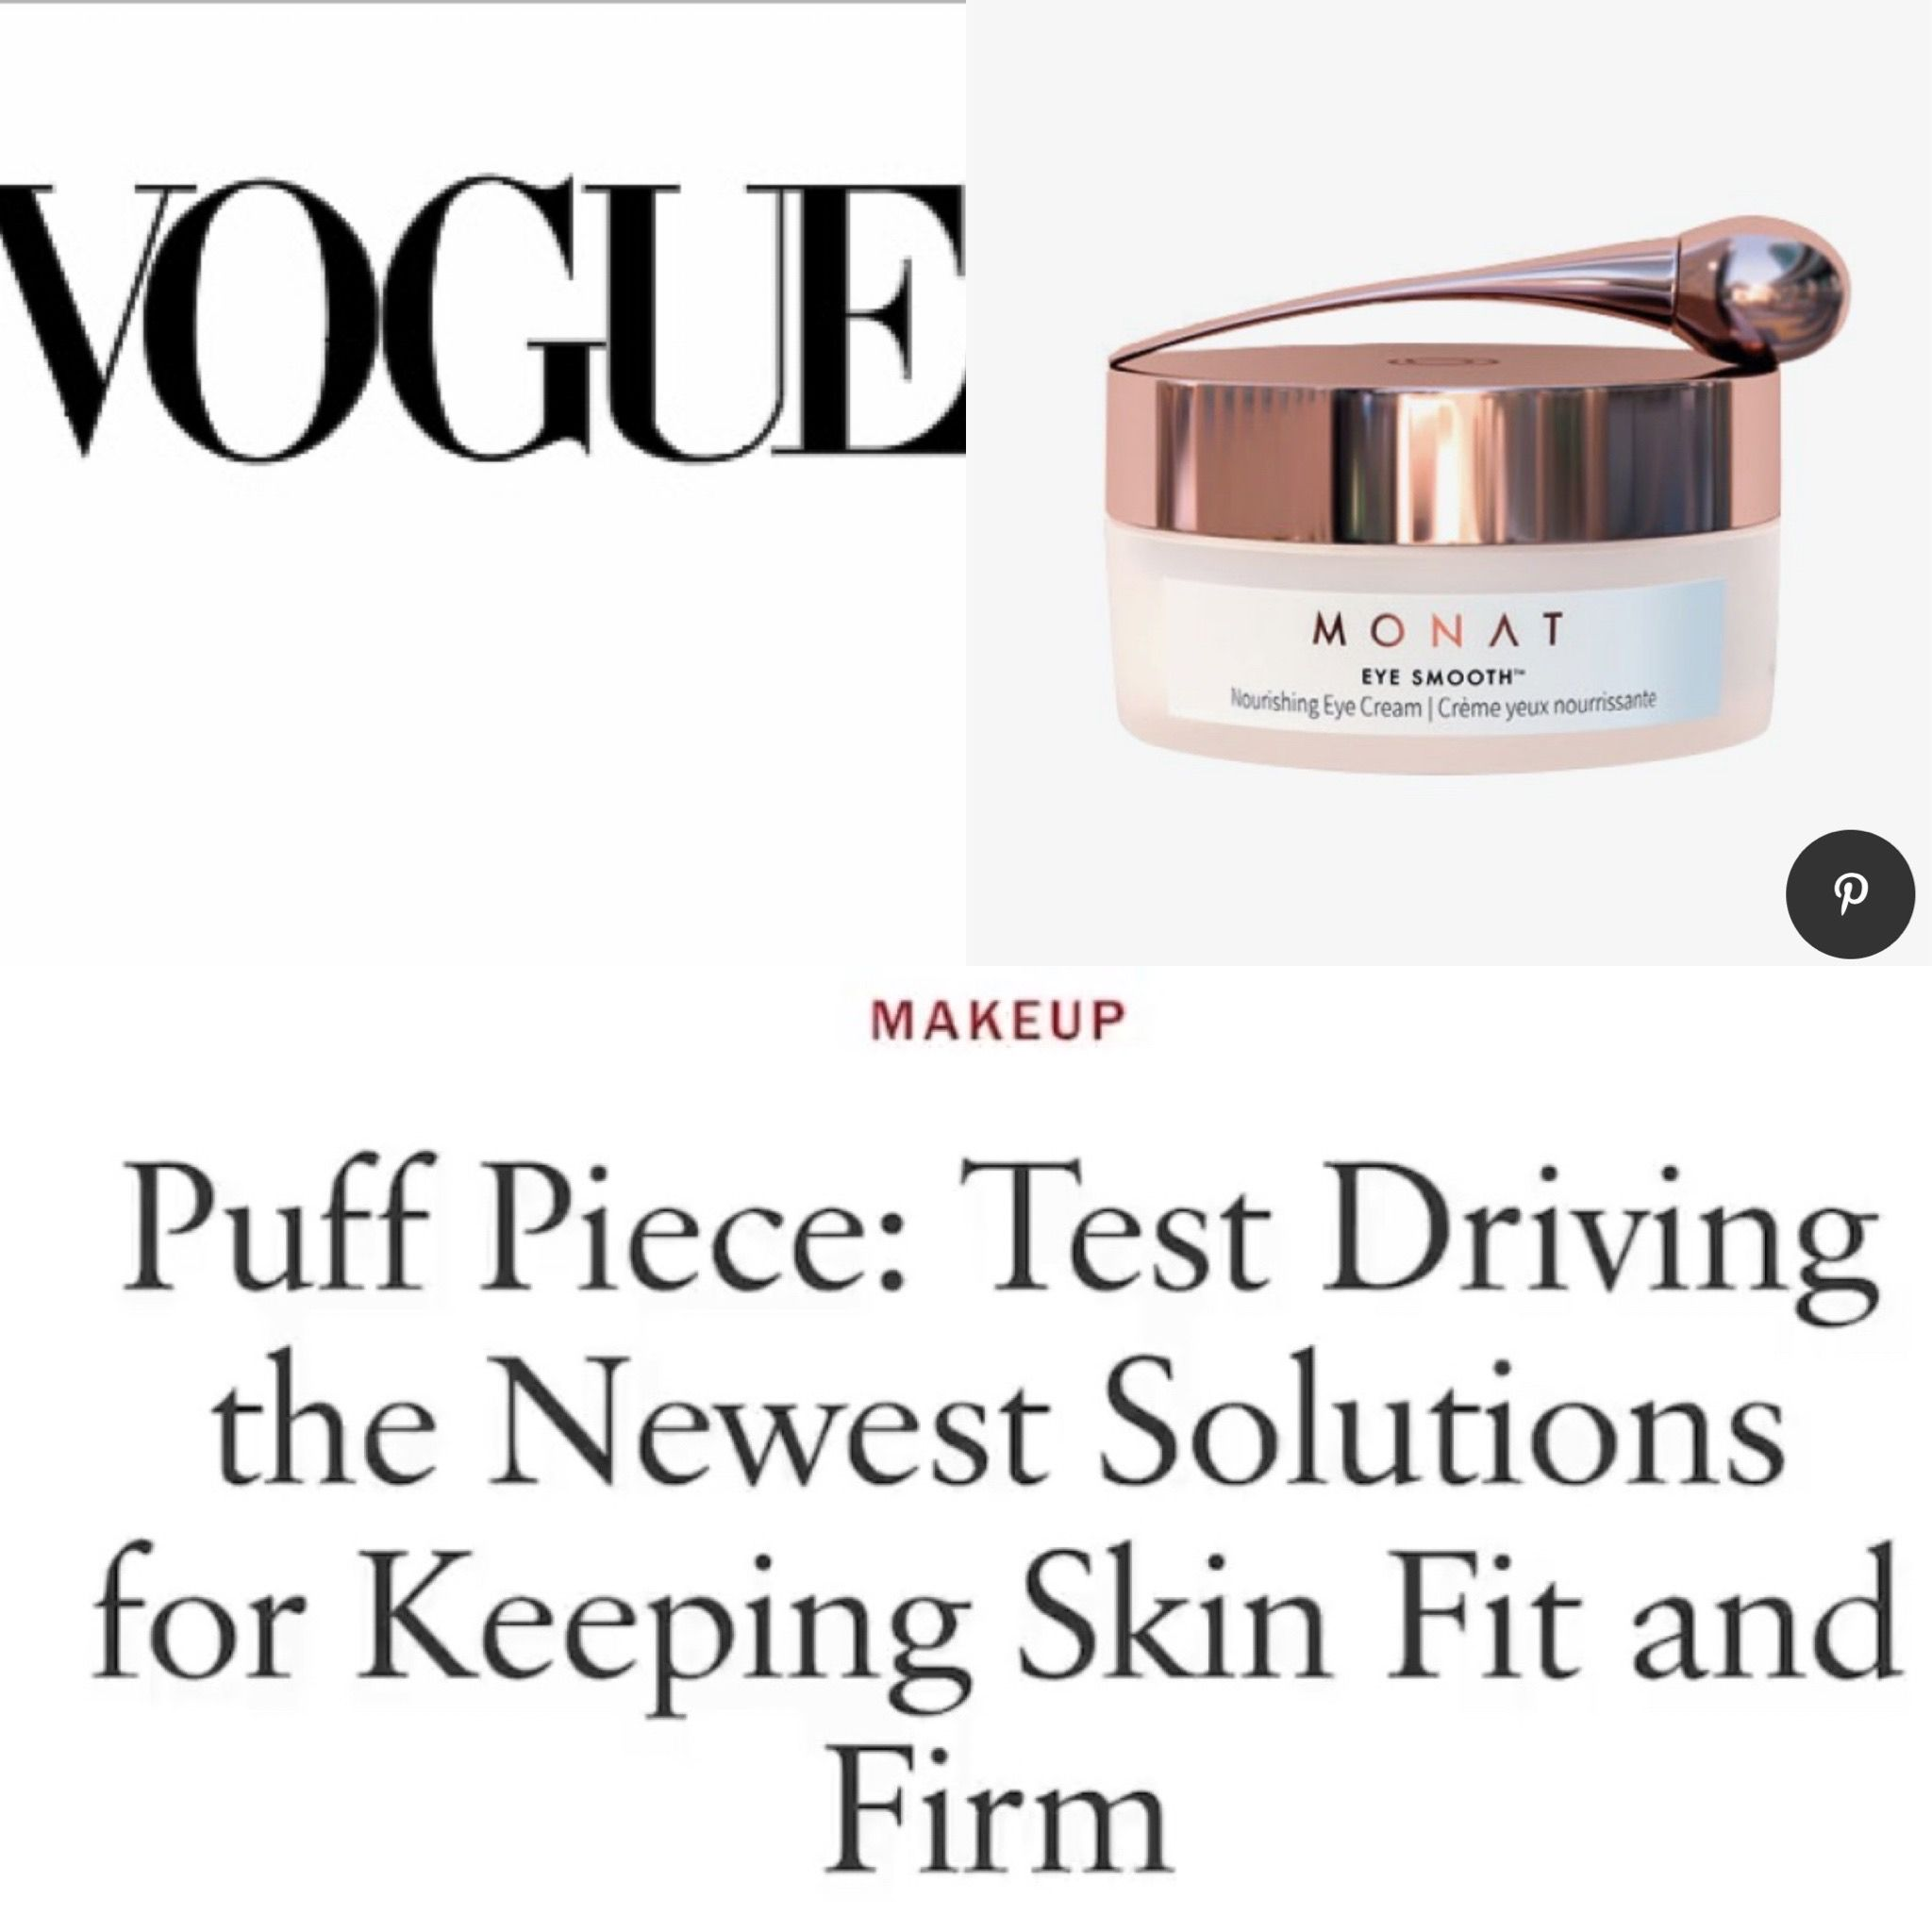 Monat Skincare In Vogue Magazine In 2020 Monat Anti Aging Skin